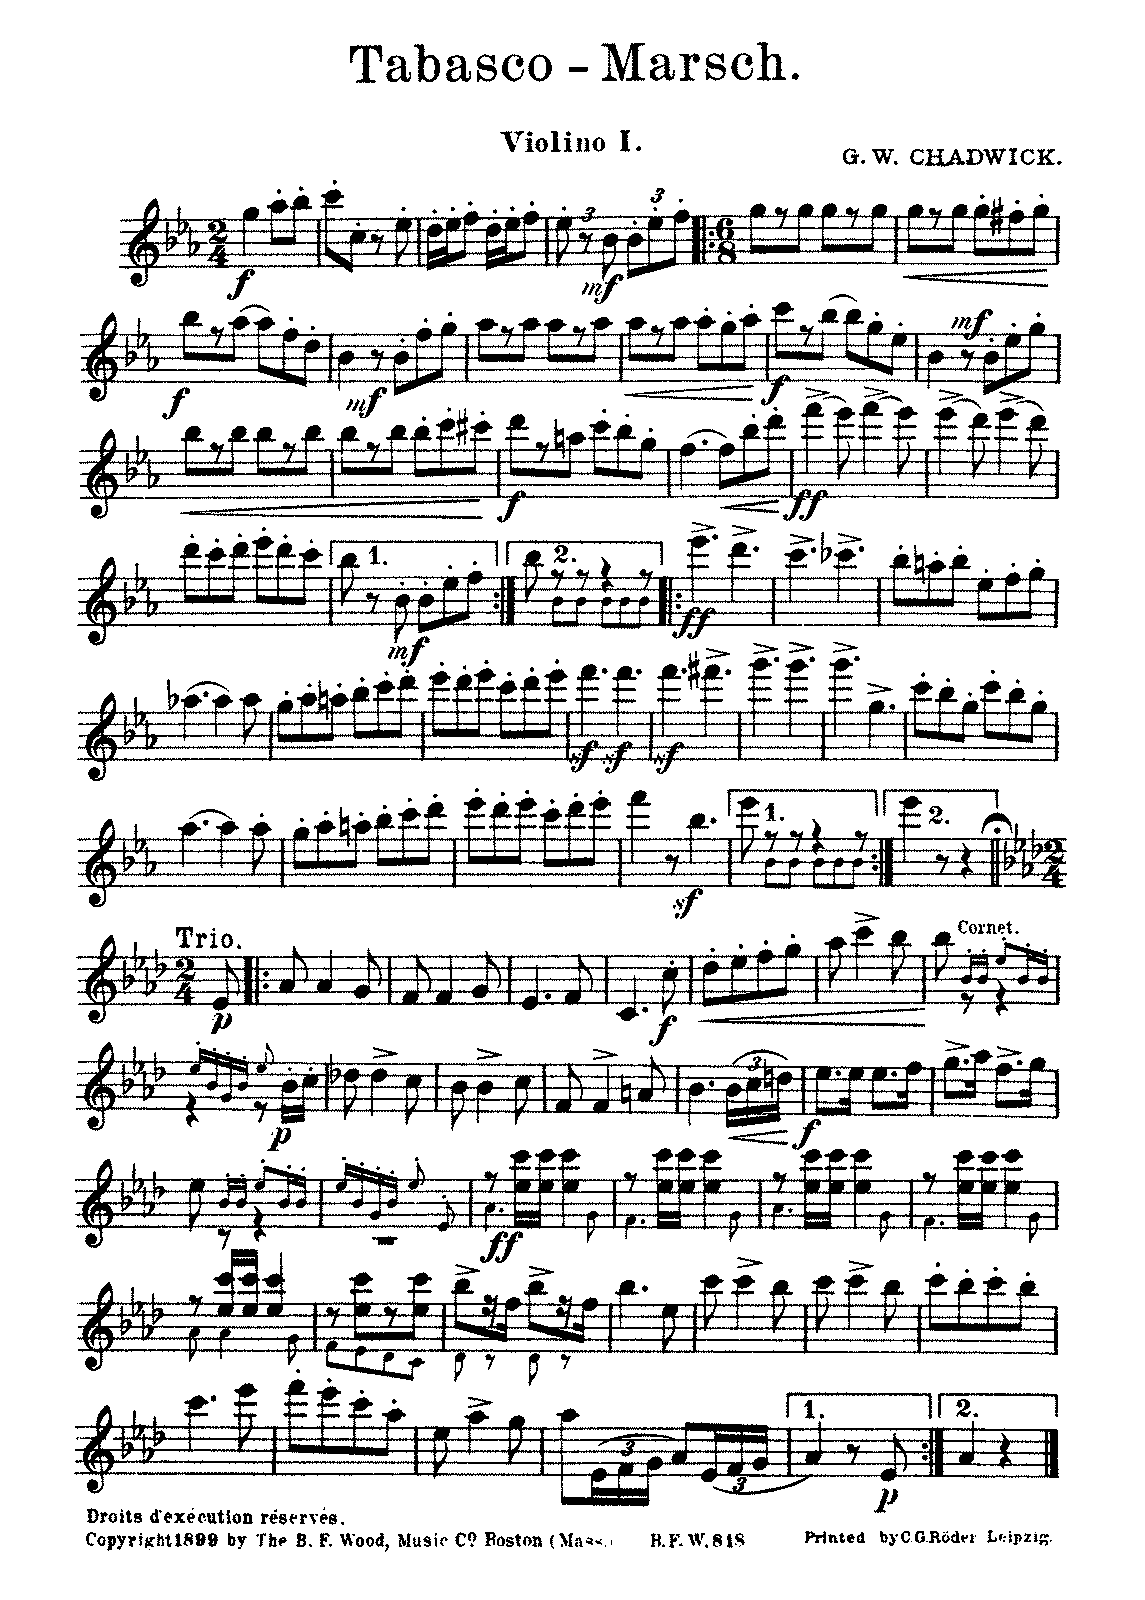 PMLP06196-GWChadwick Tabasco March stringparts.pdf